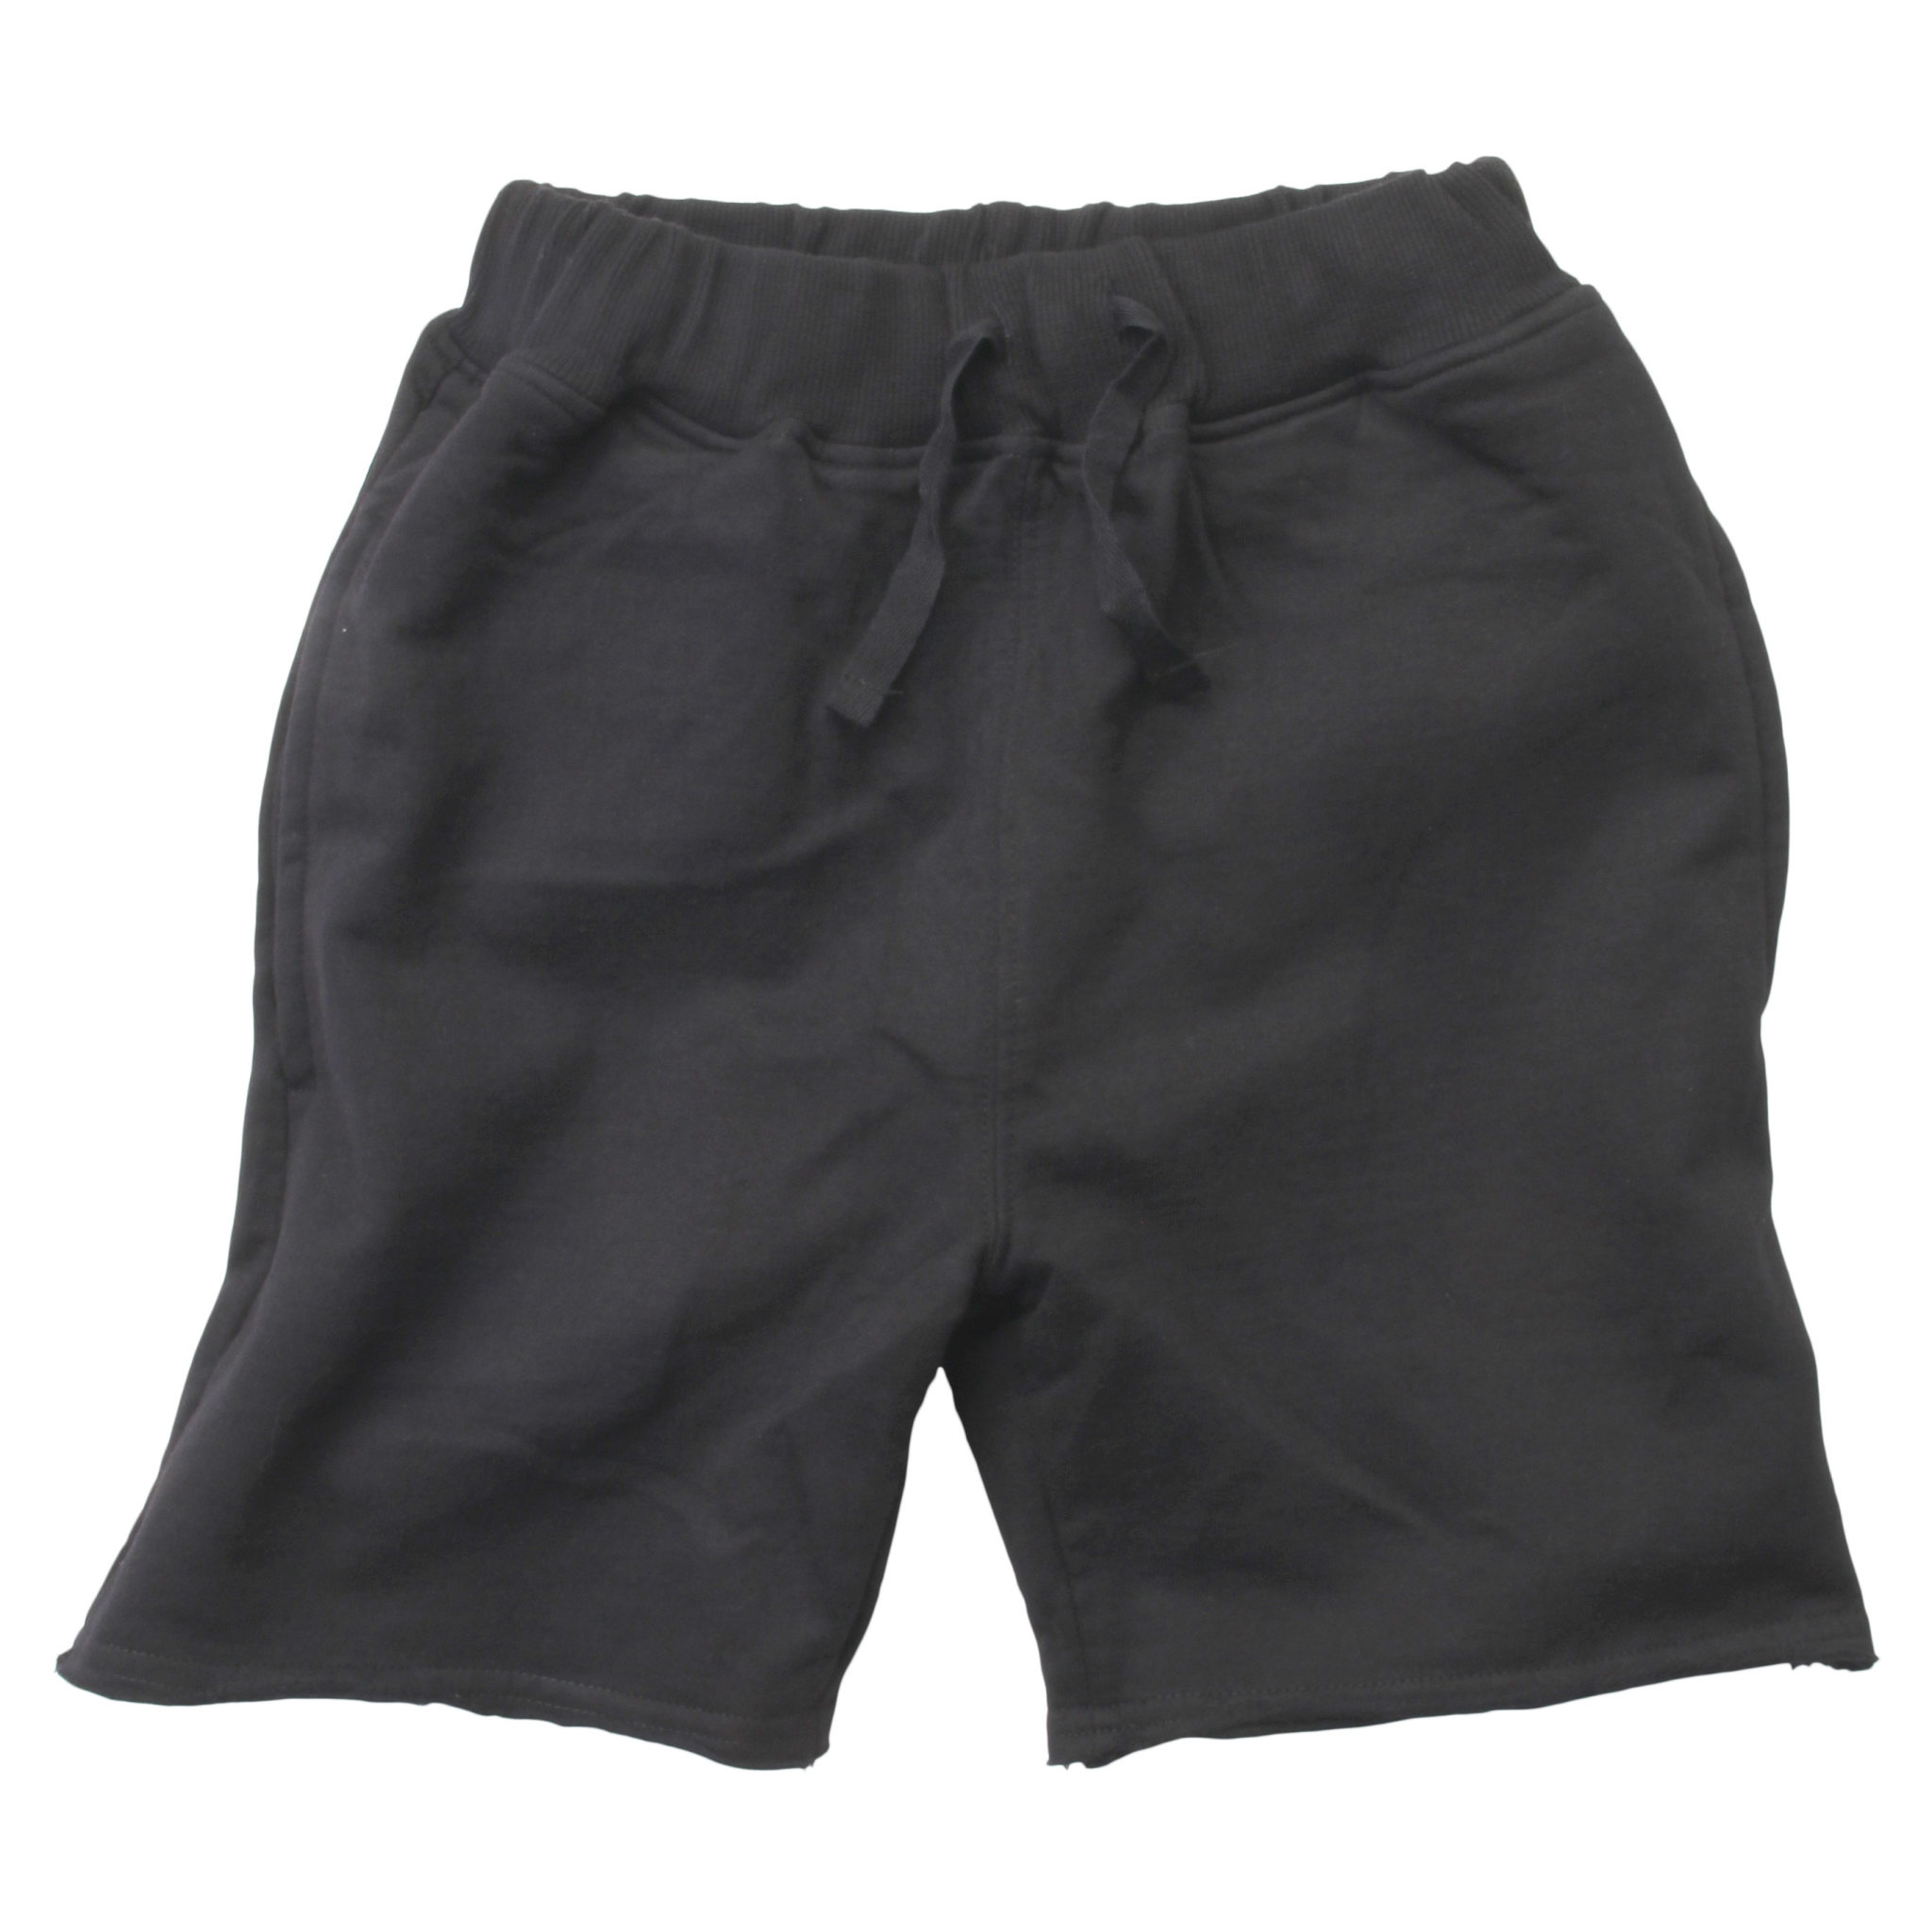 Wes And Willy Raw Edge Fleece Short Black